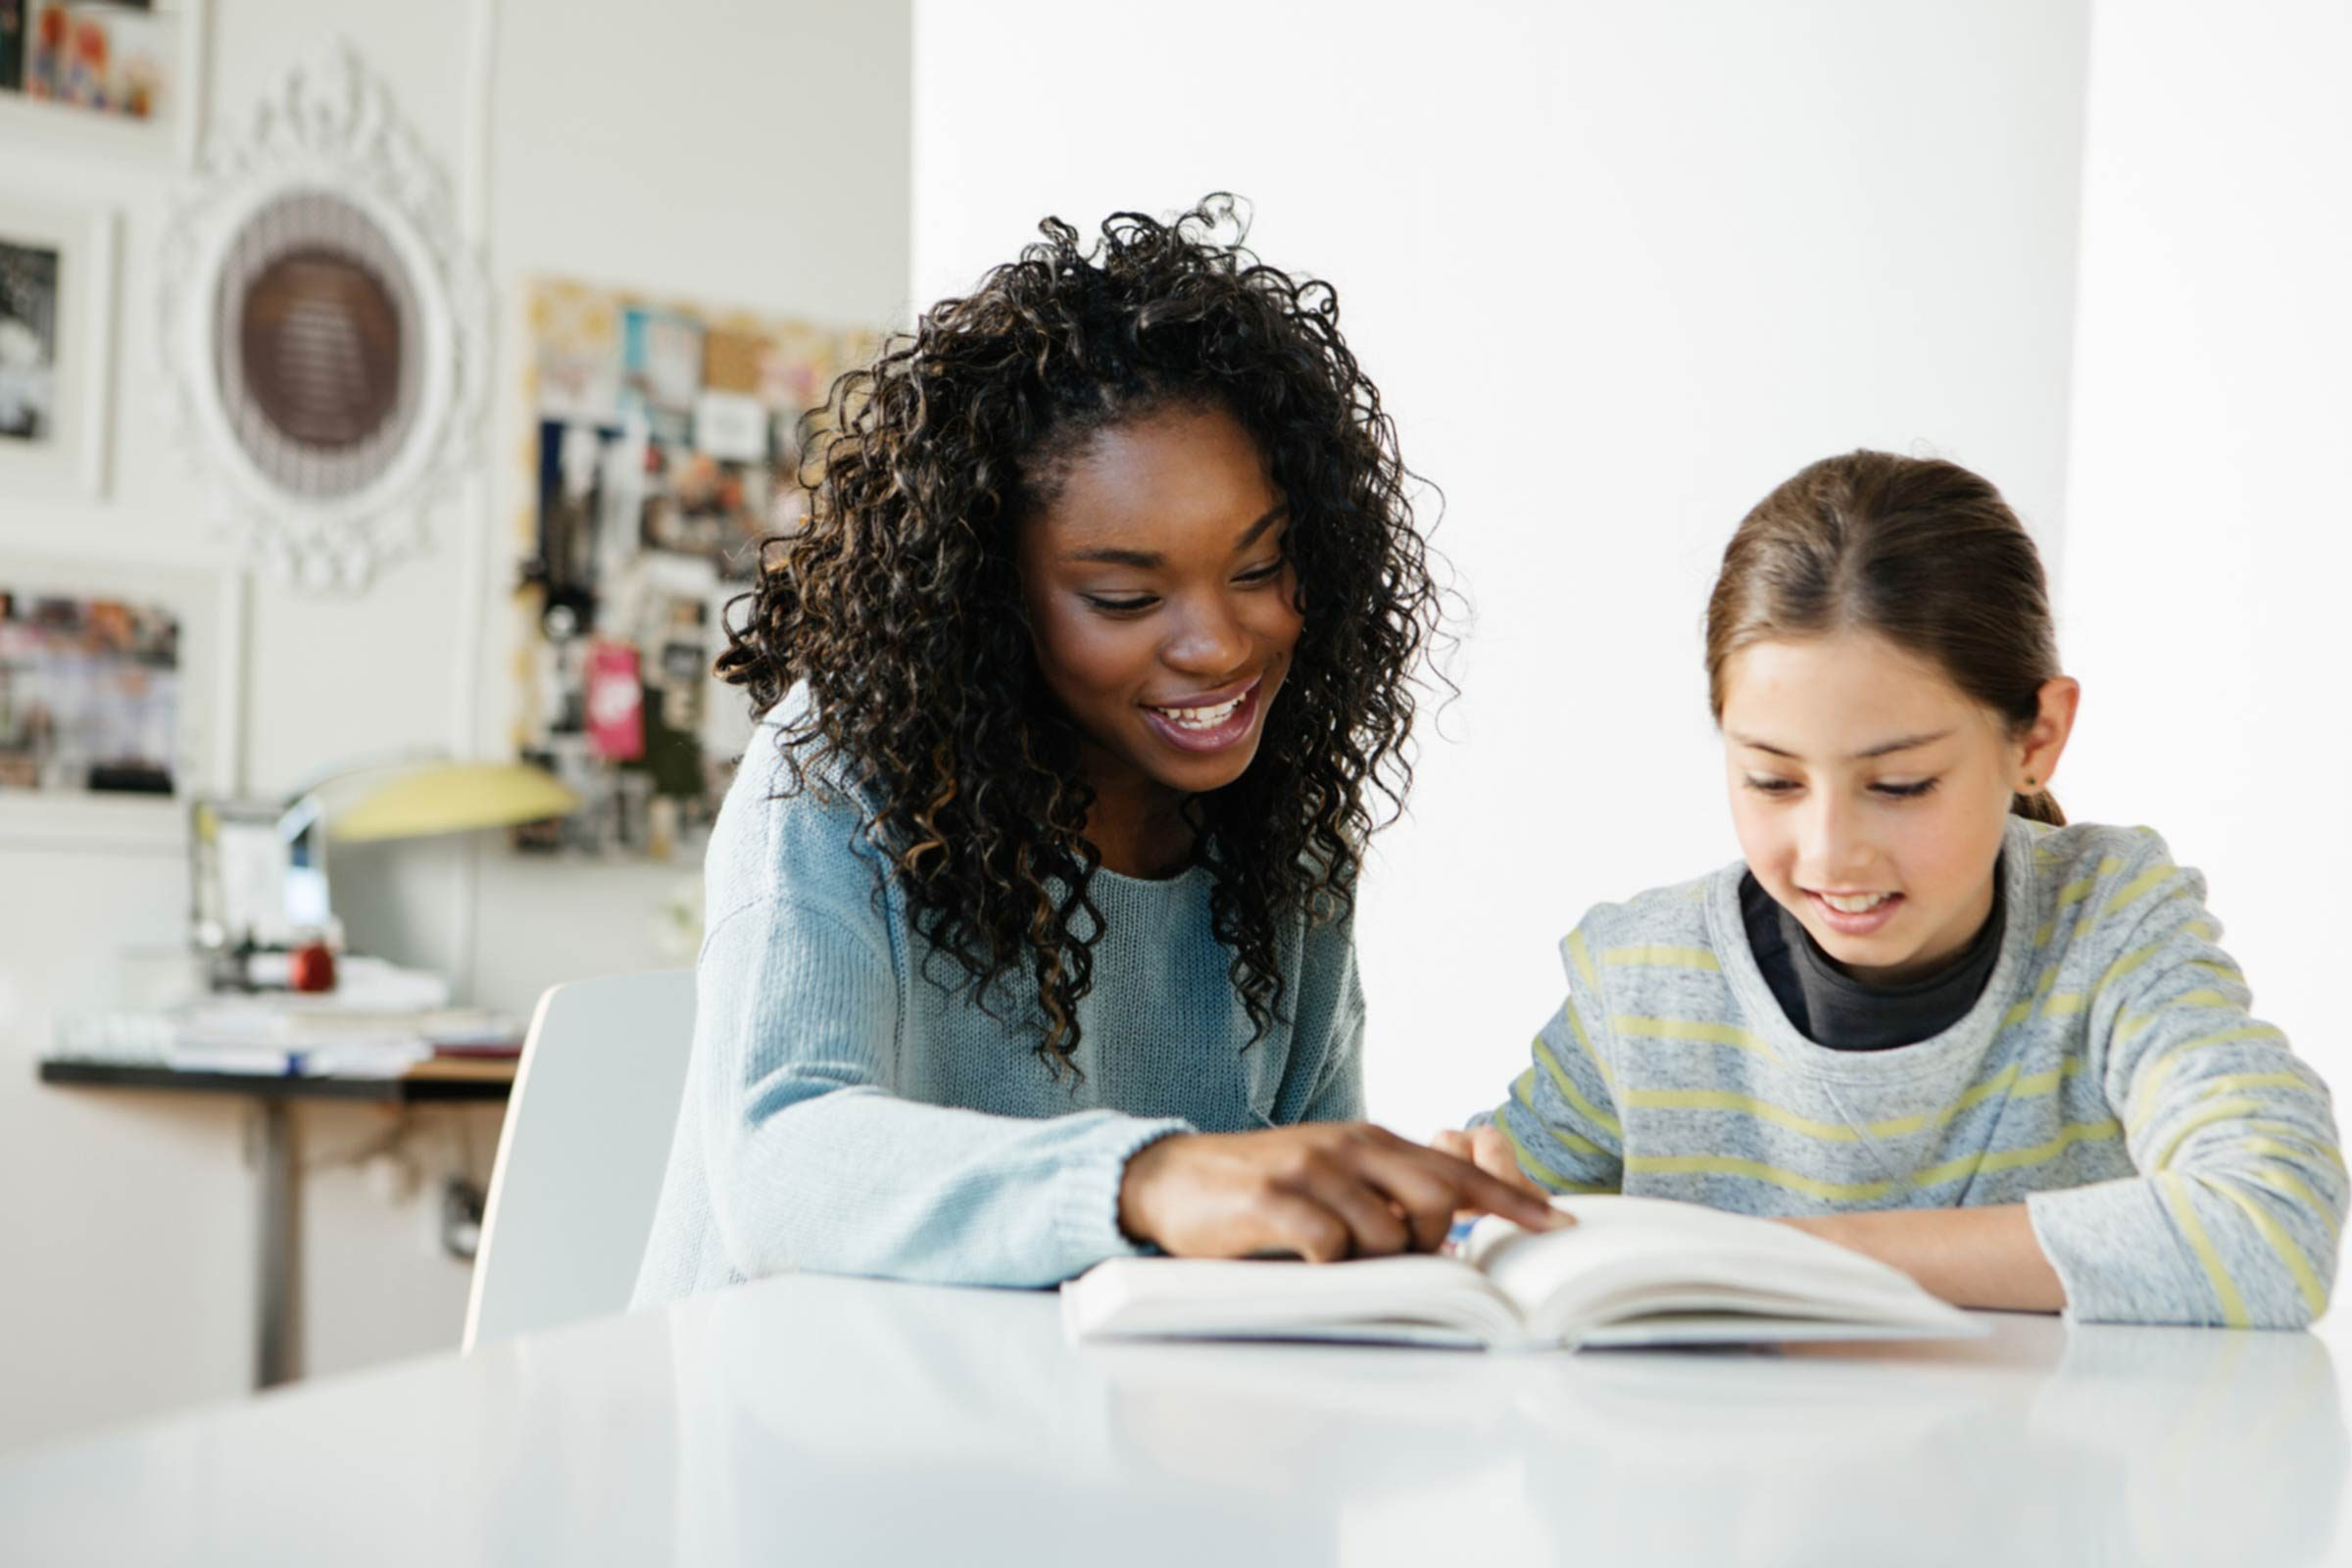 Volunteer to tutor a foster child